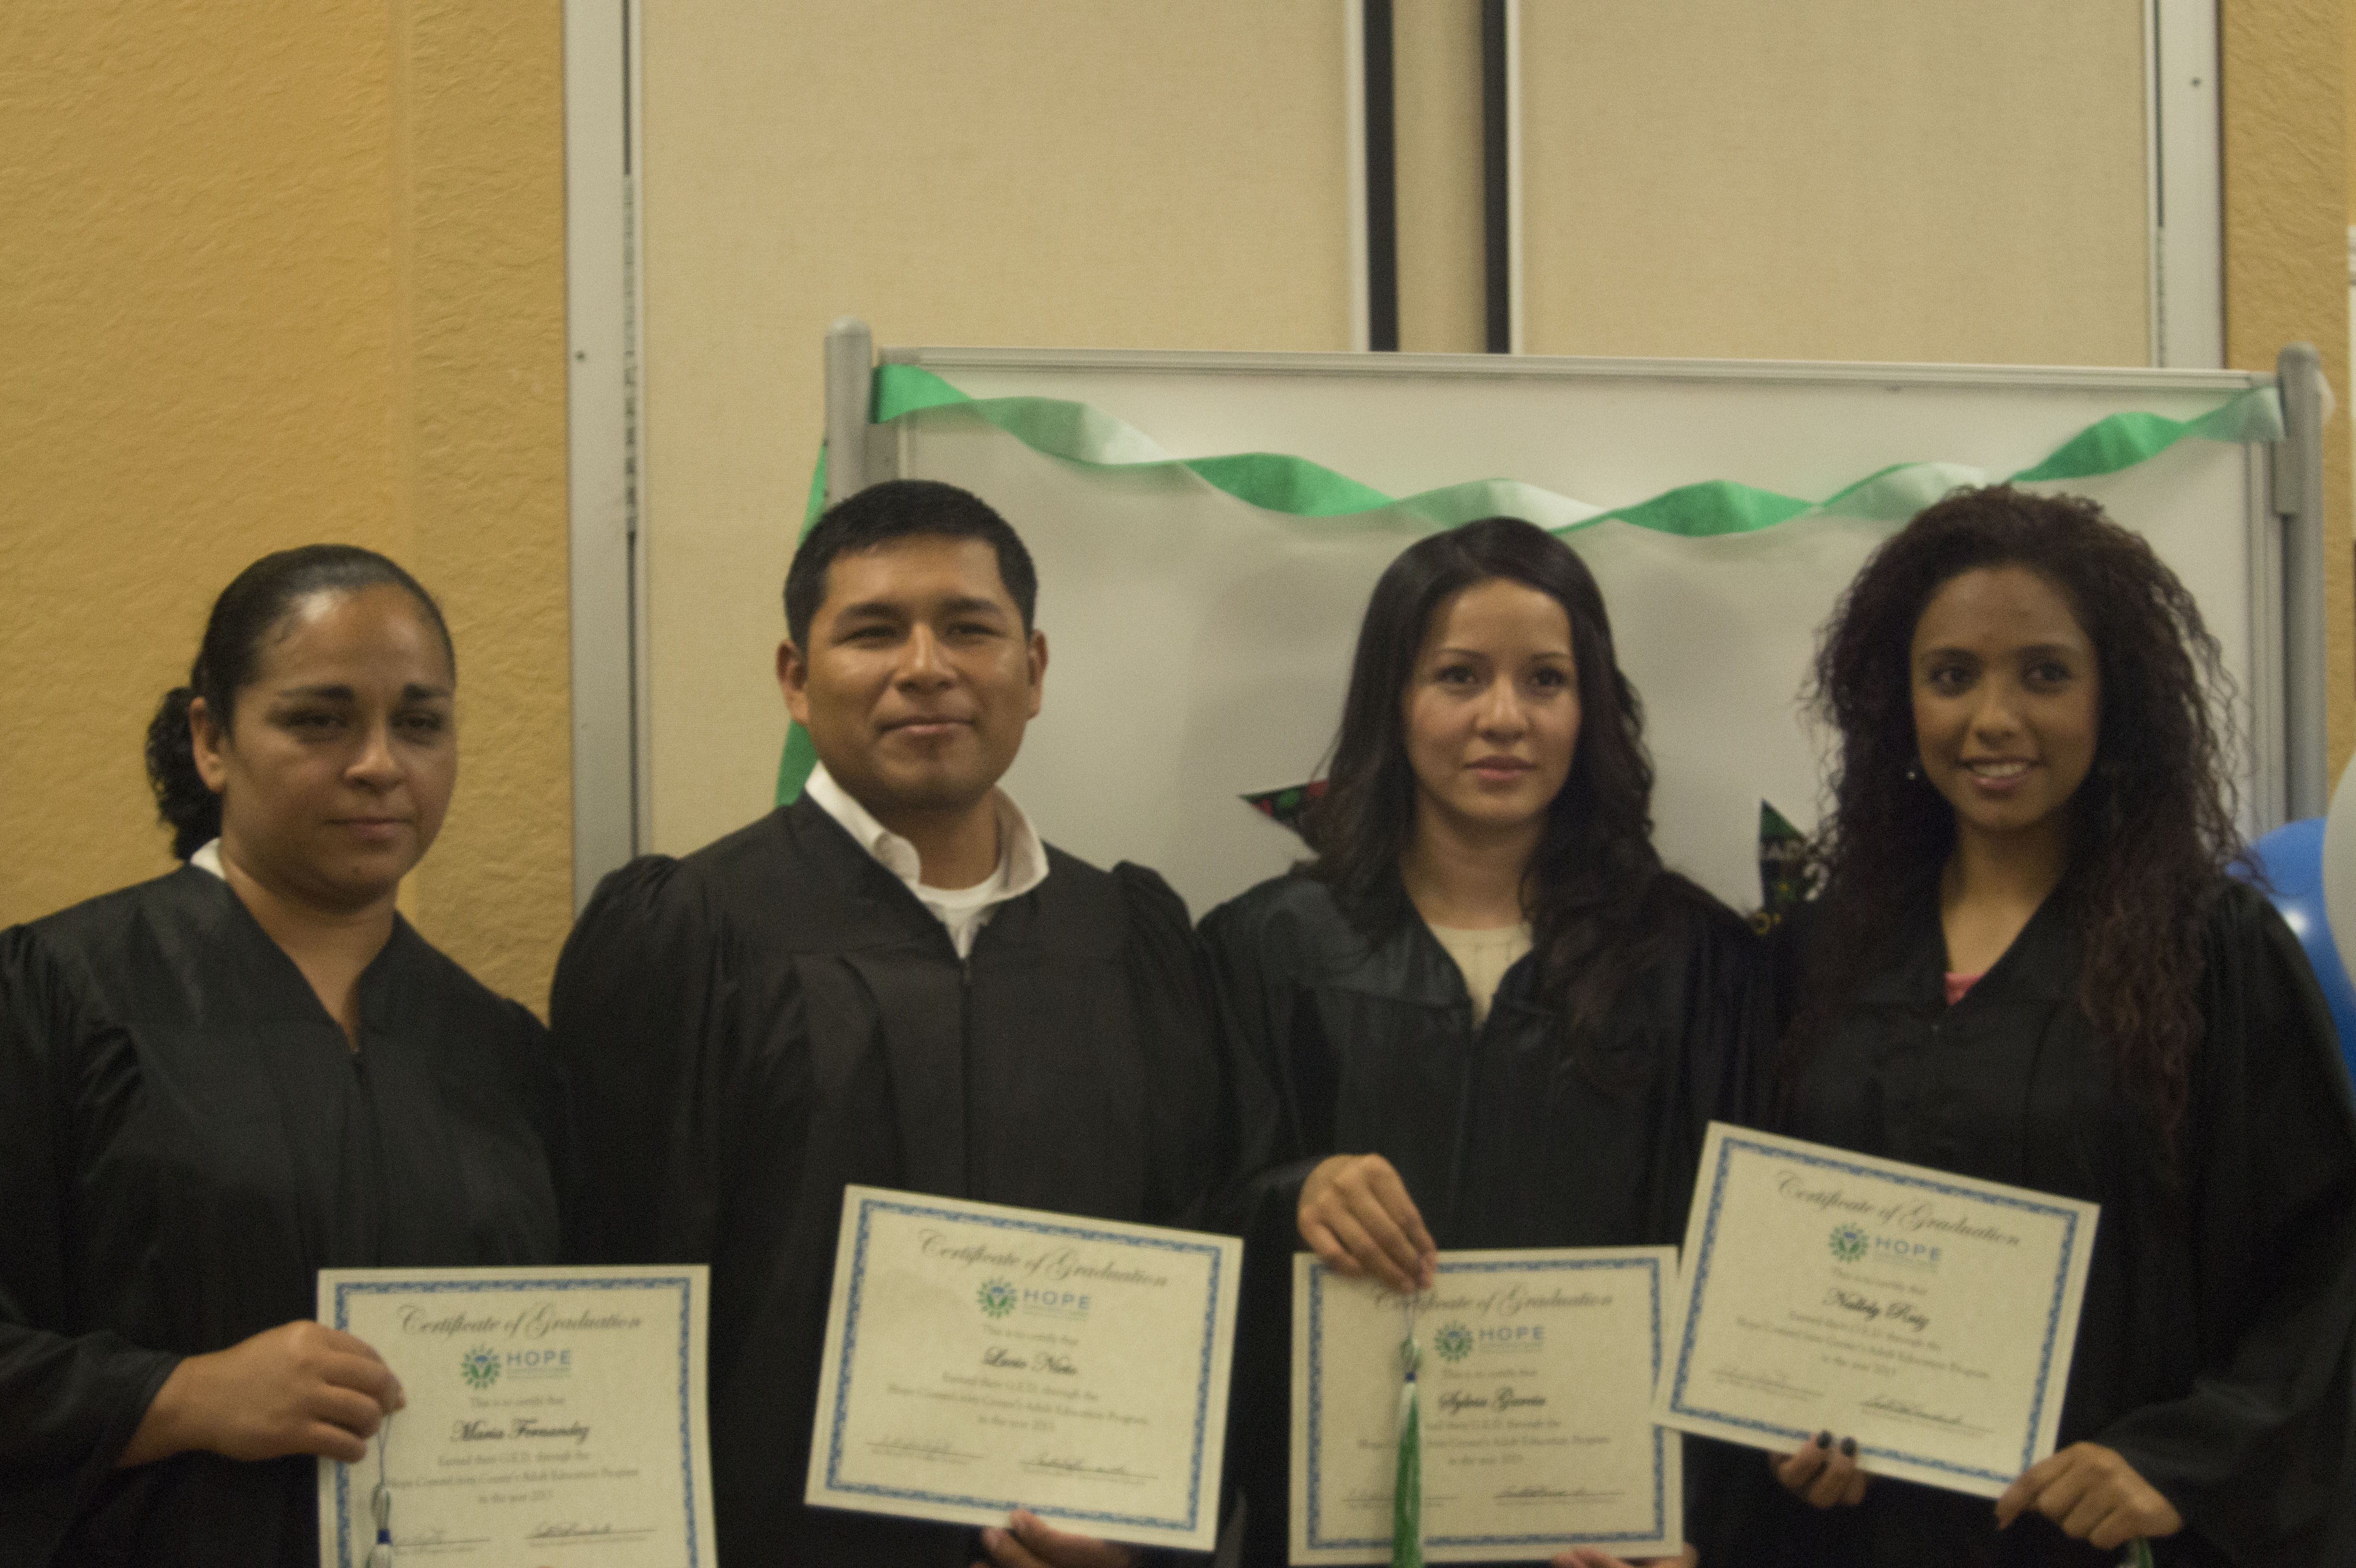 the ged program held its first graduation hope community center